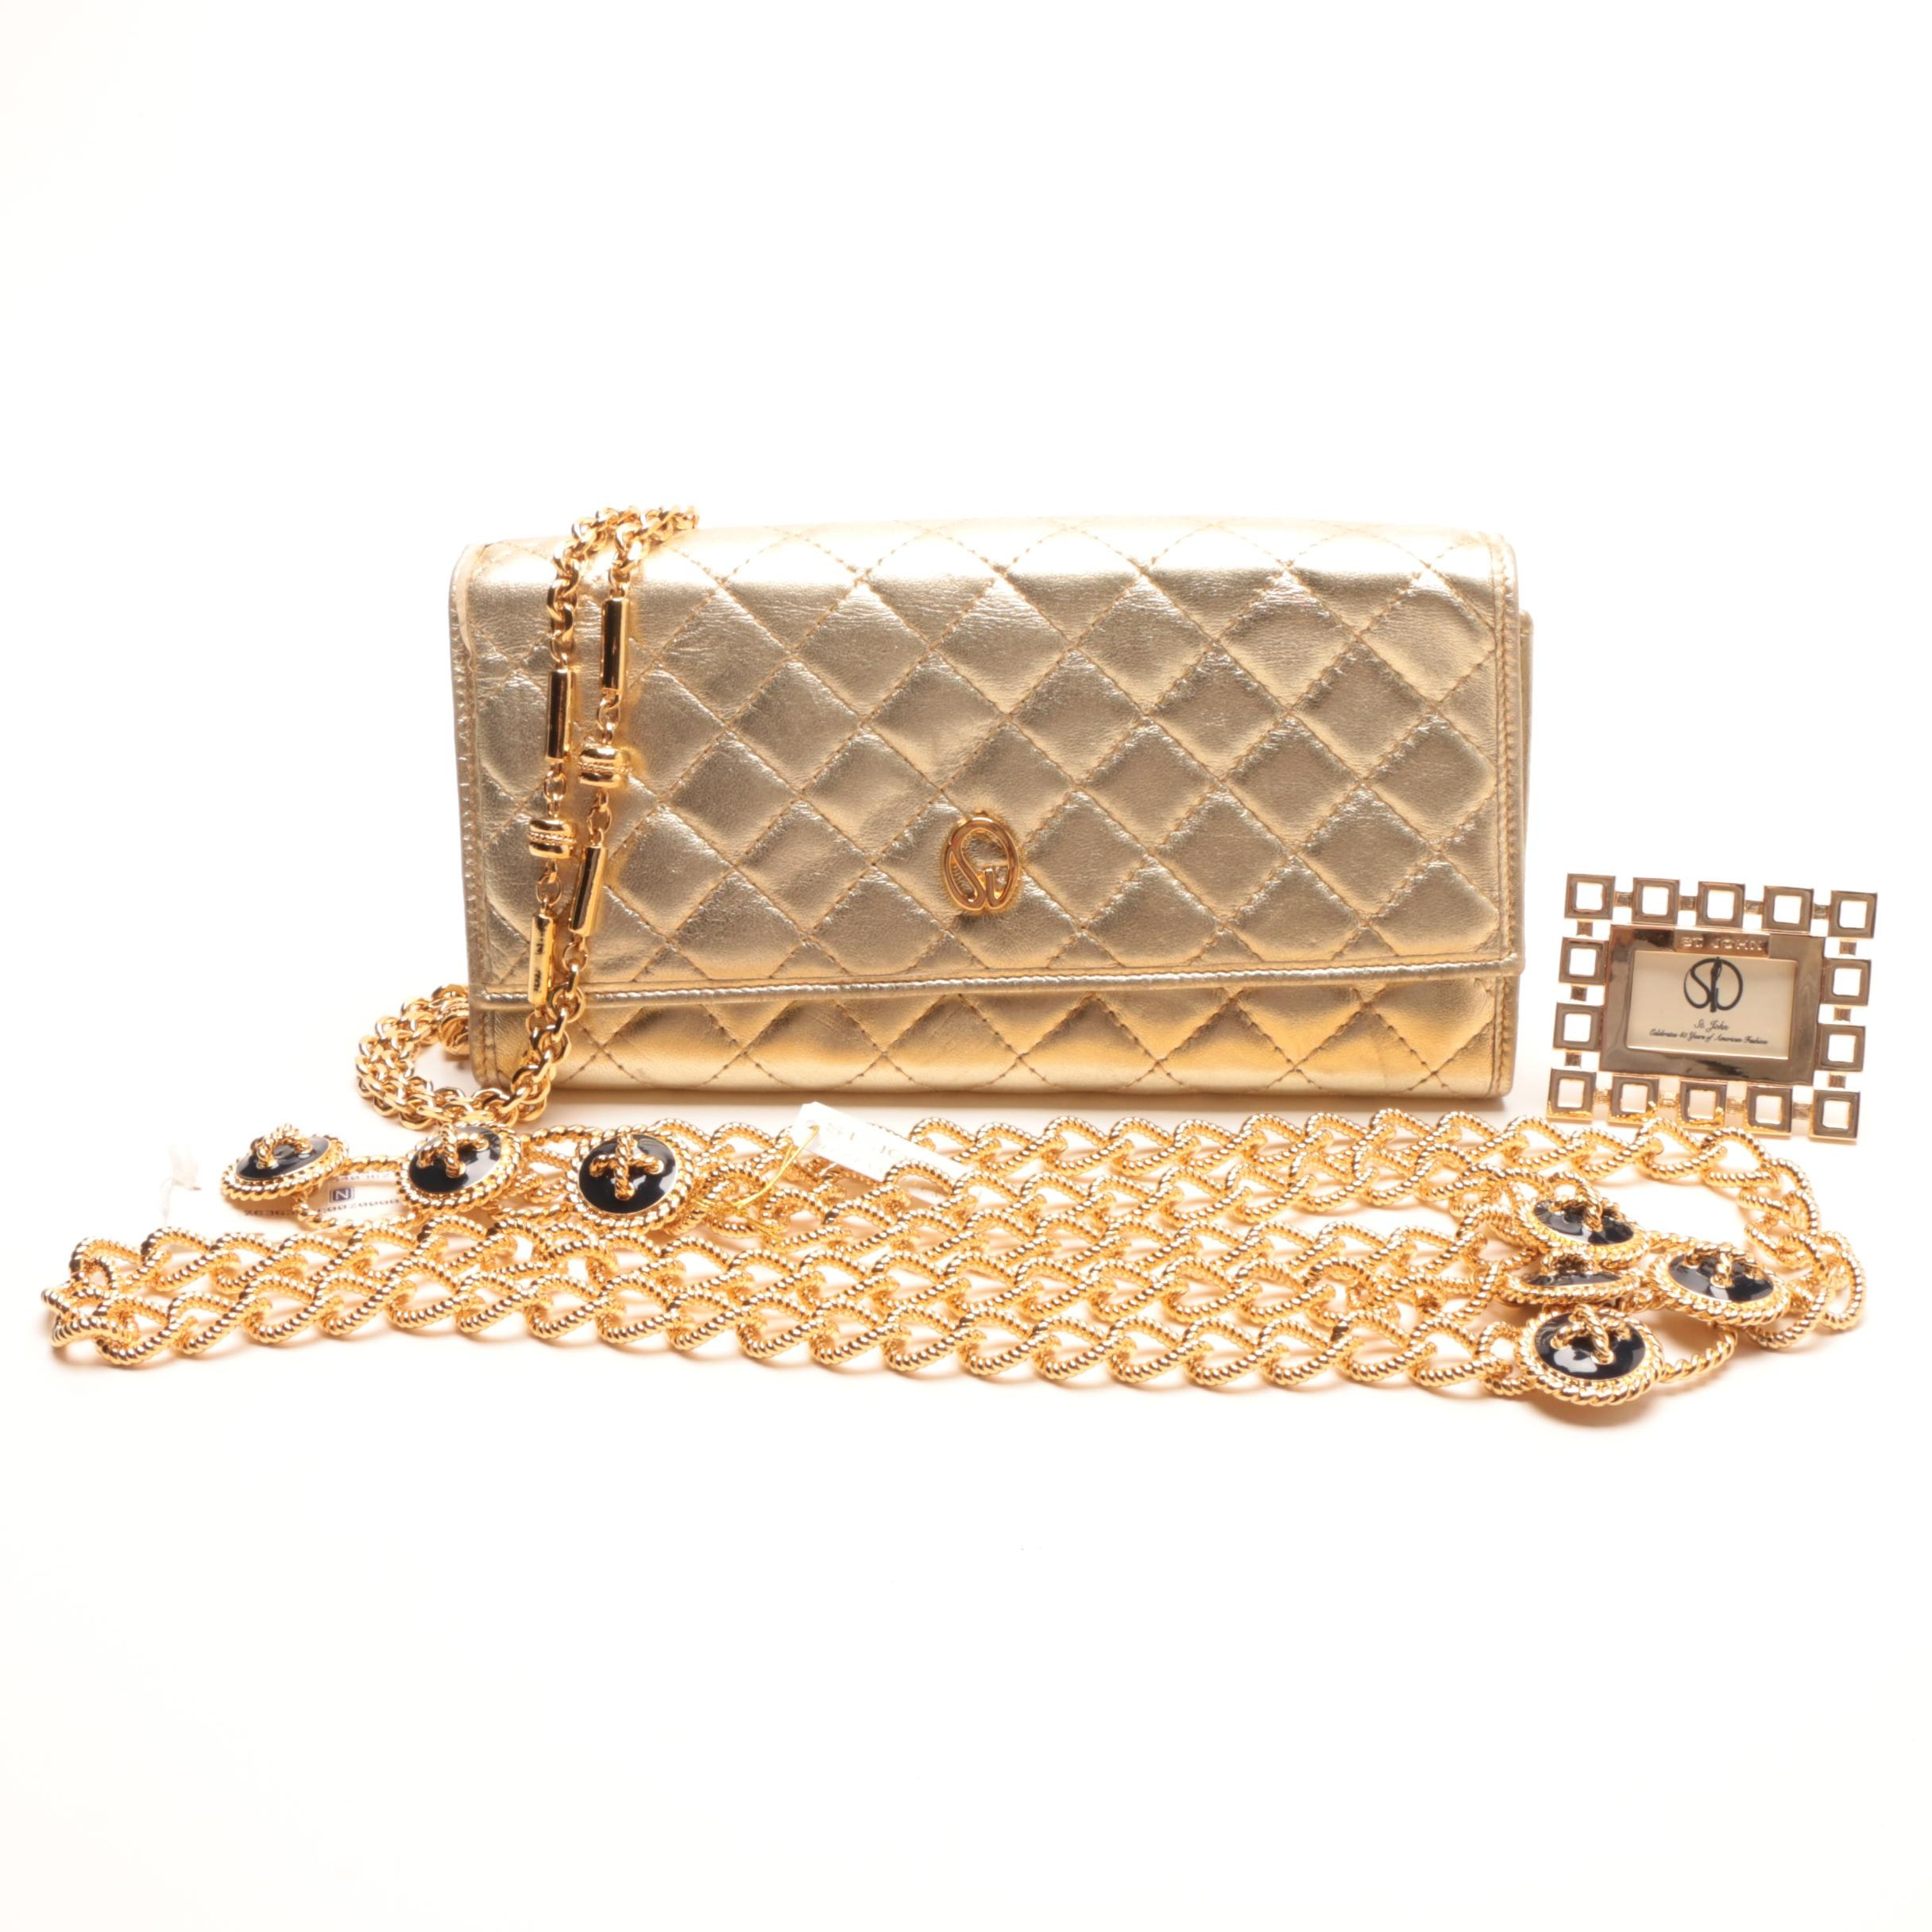 St. John Quilted Gold Metallic Leather Clutch and Other Accessories